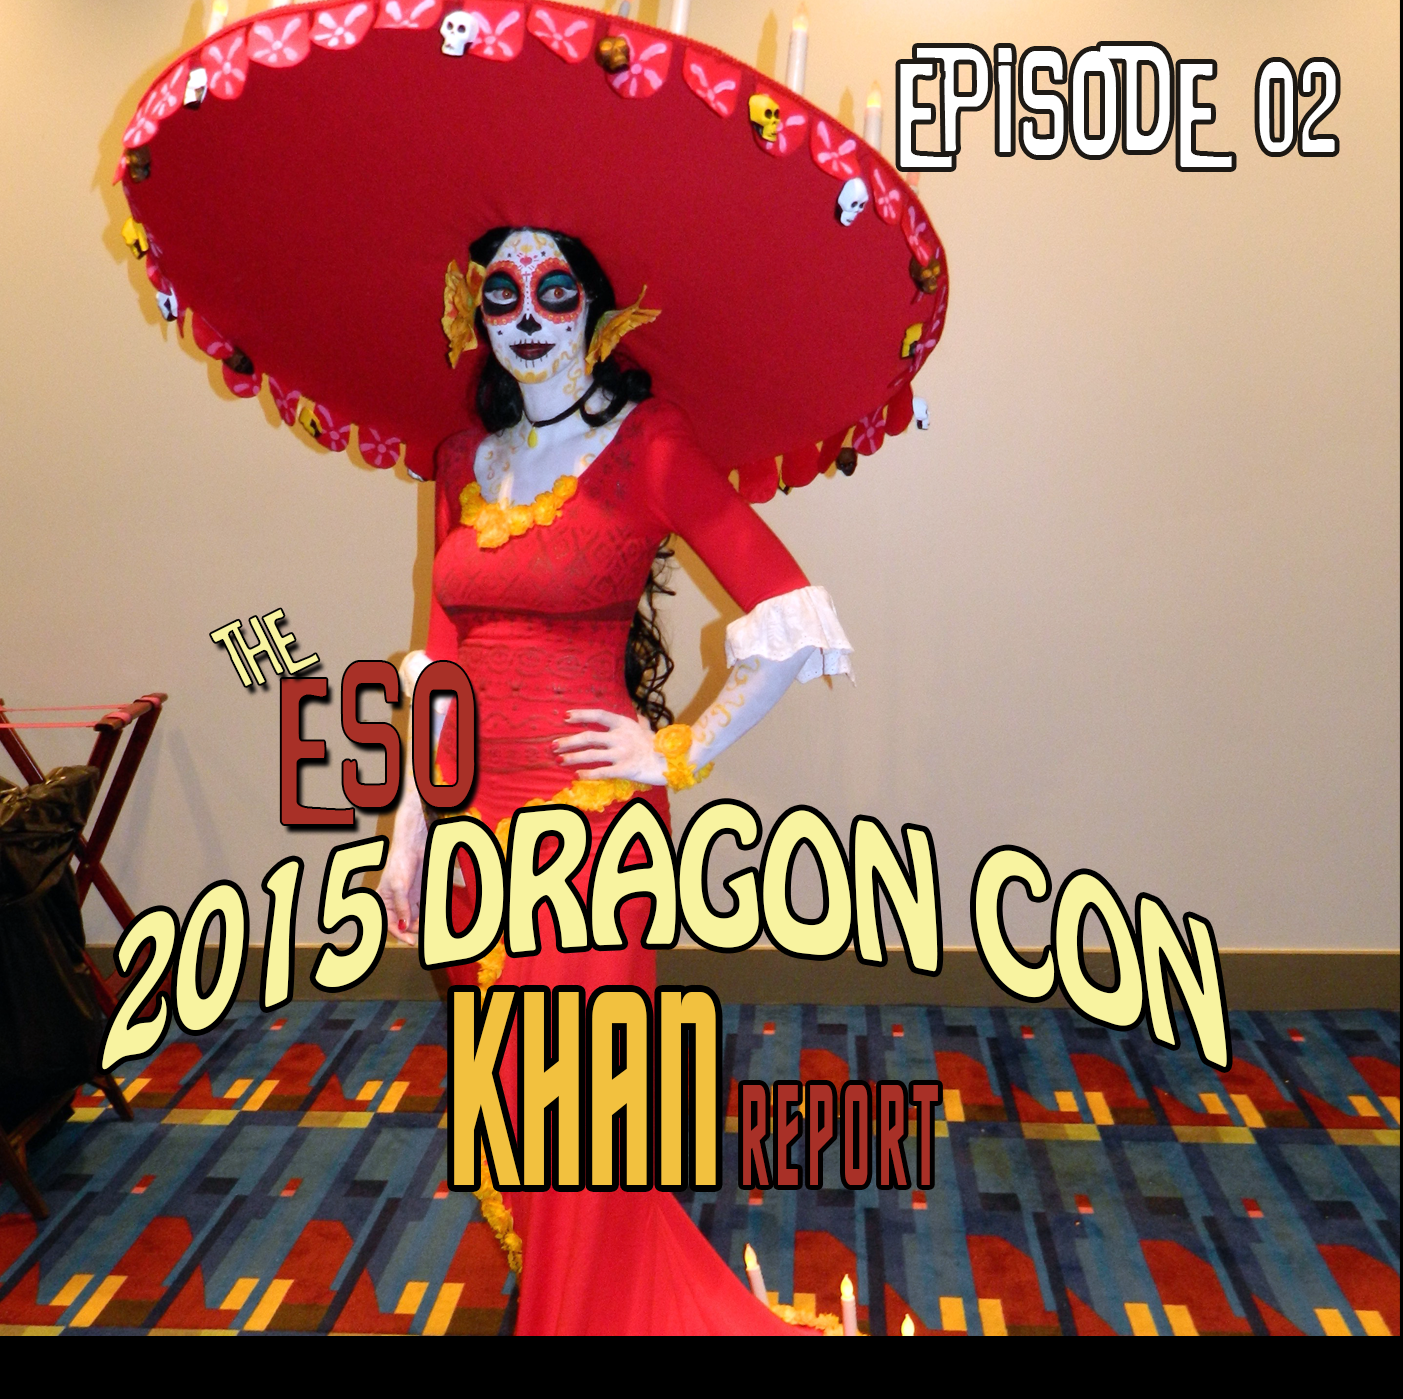 The ESO 2015 DragonCon Khan Report Ep 2